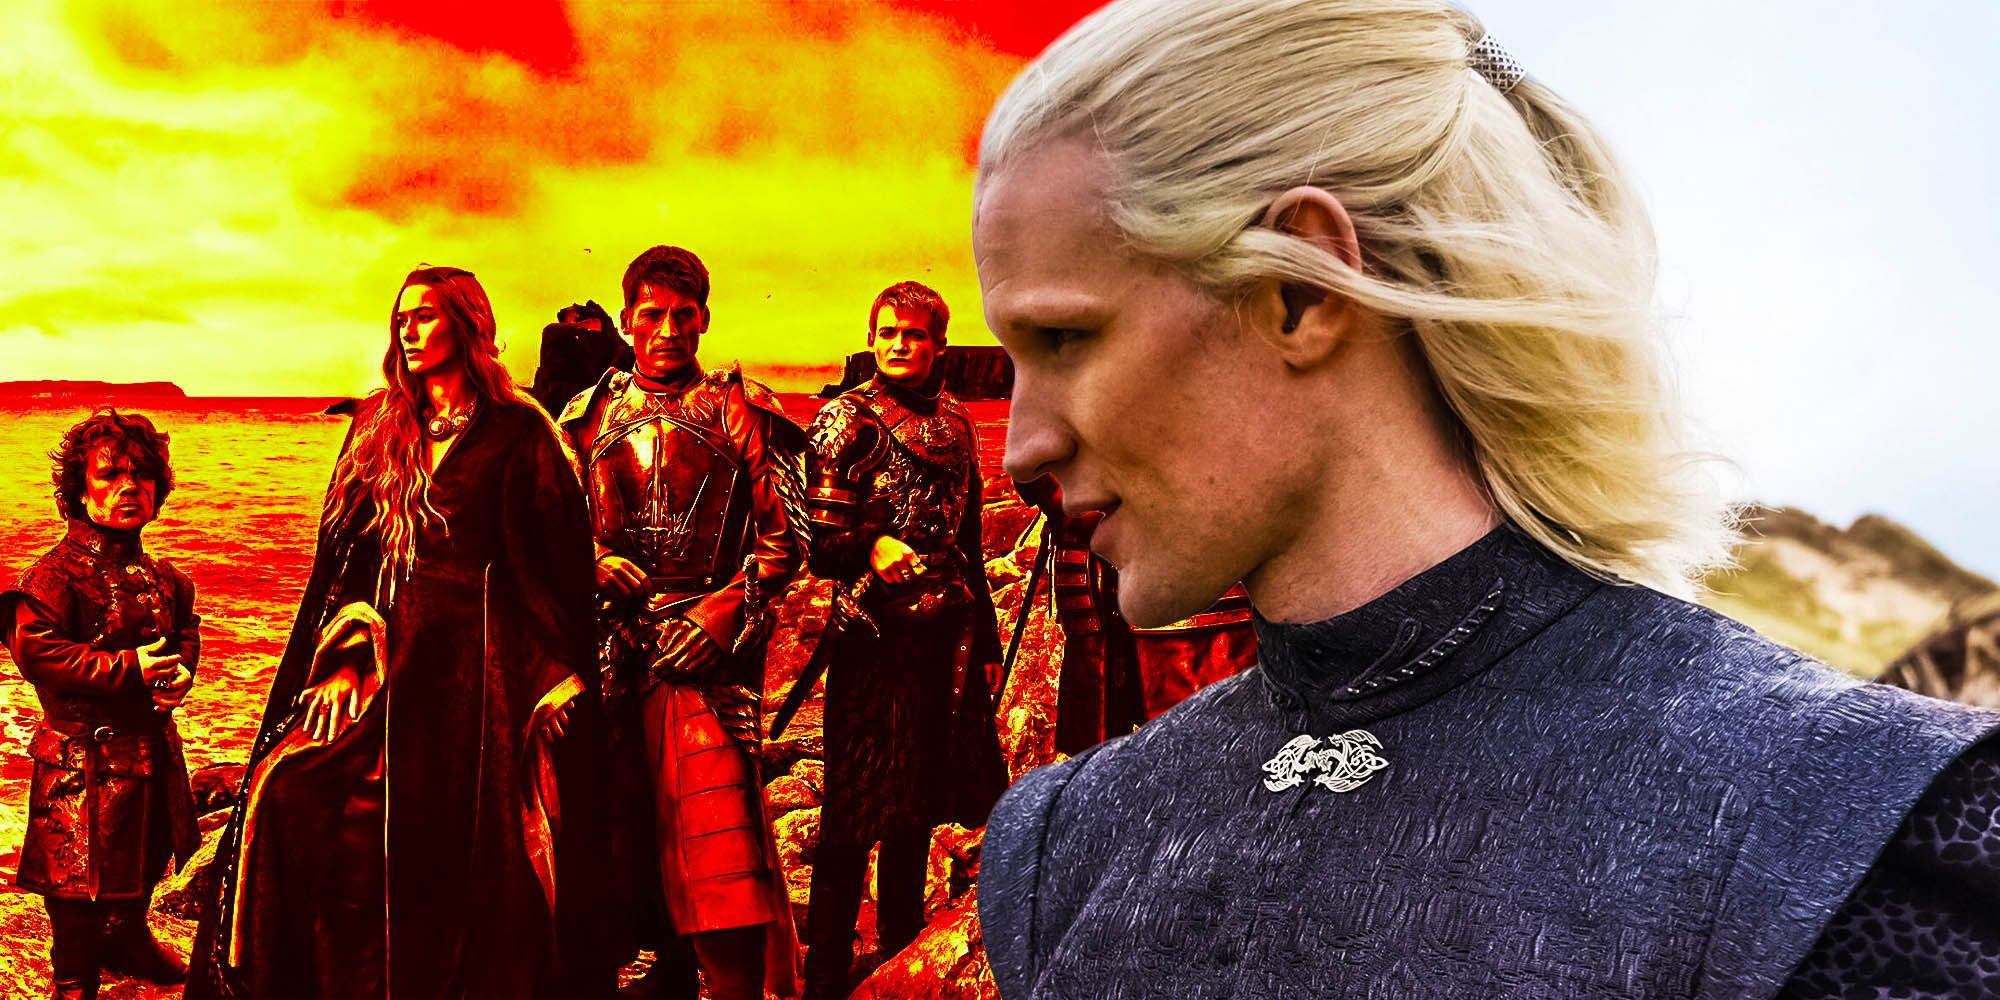 House Of The Dragon's Lannisters Will Be Very Different To Game of Thrones